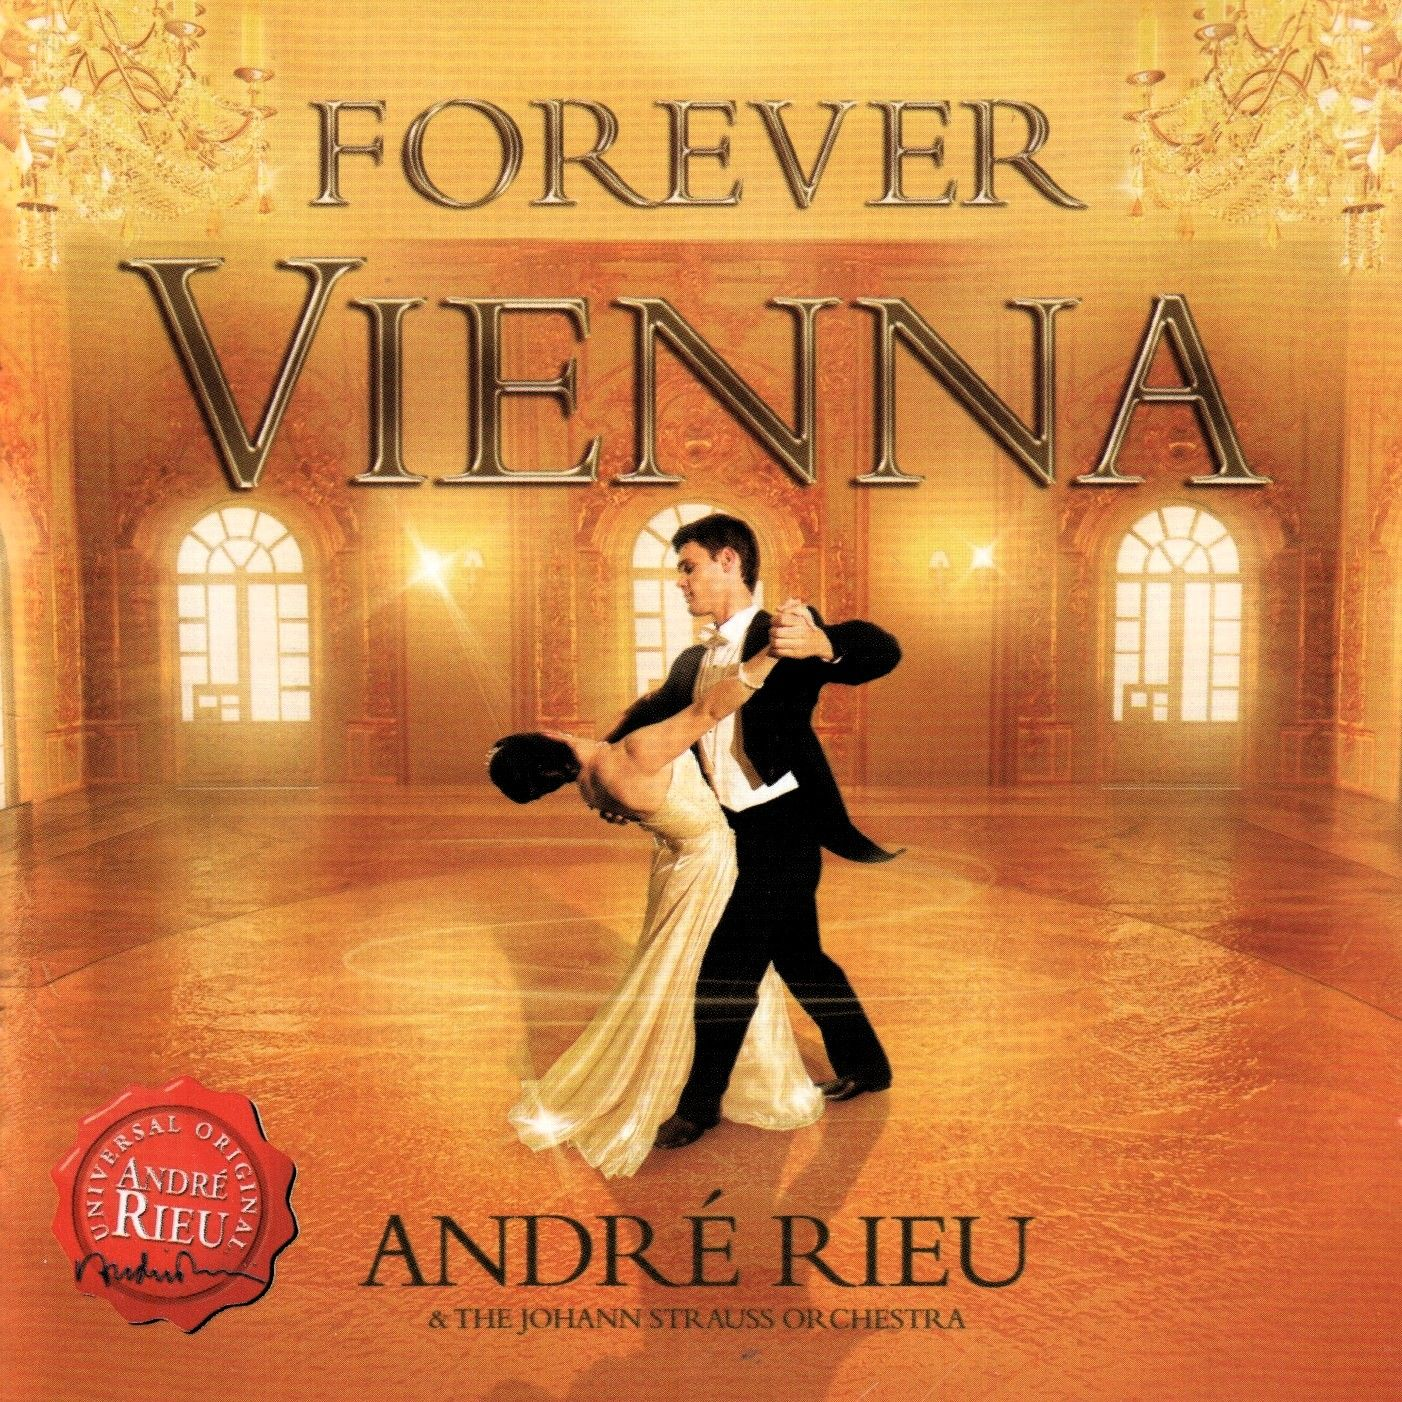 Andre Rieu & The Johann Strauss Orchestra - Forever Vienna album cover